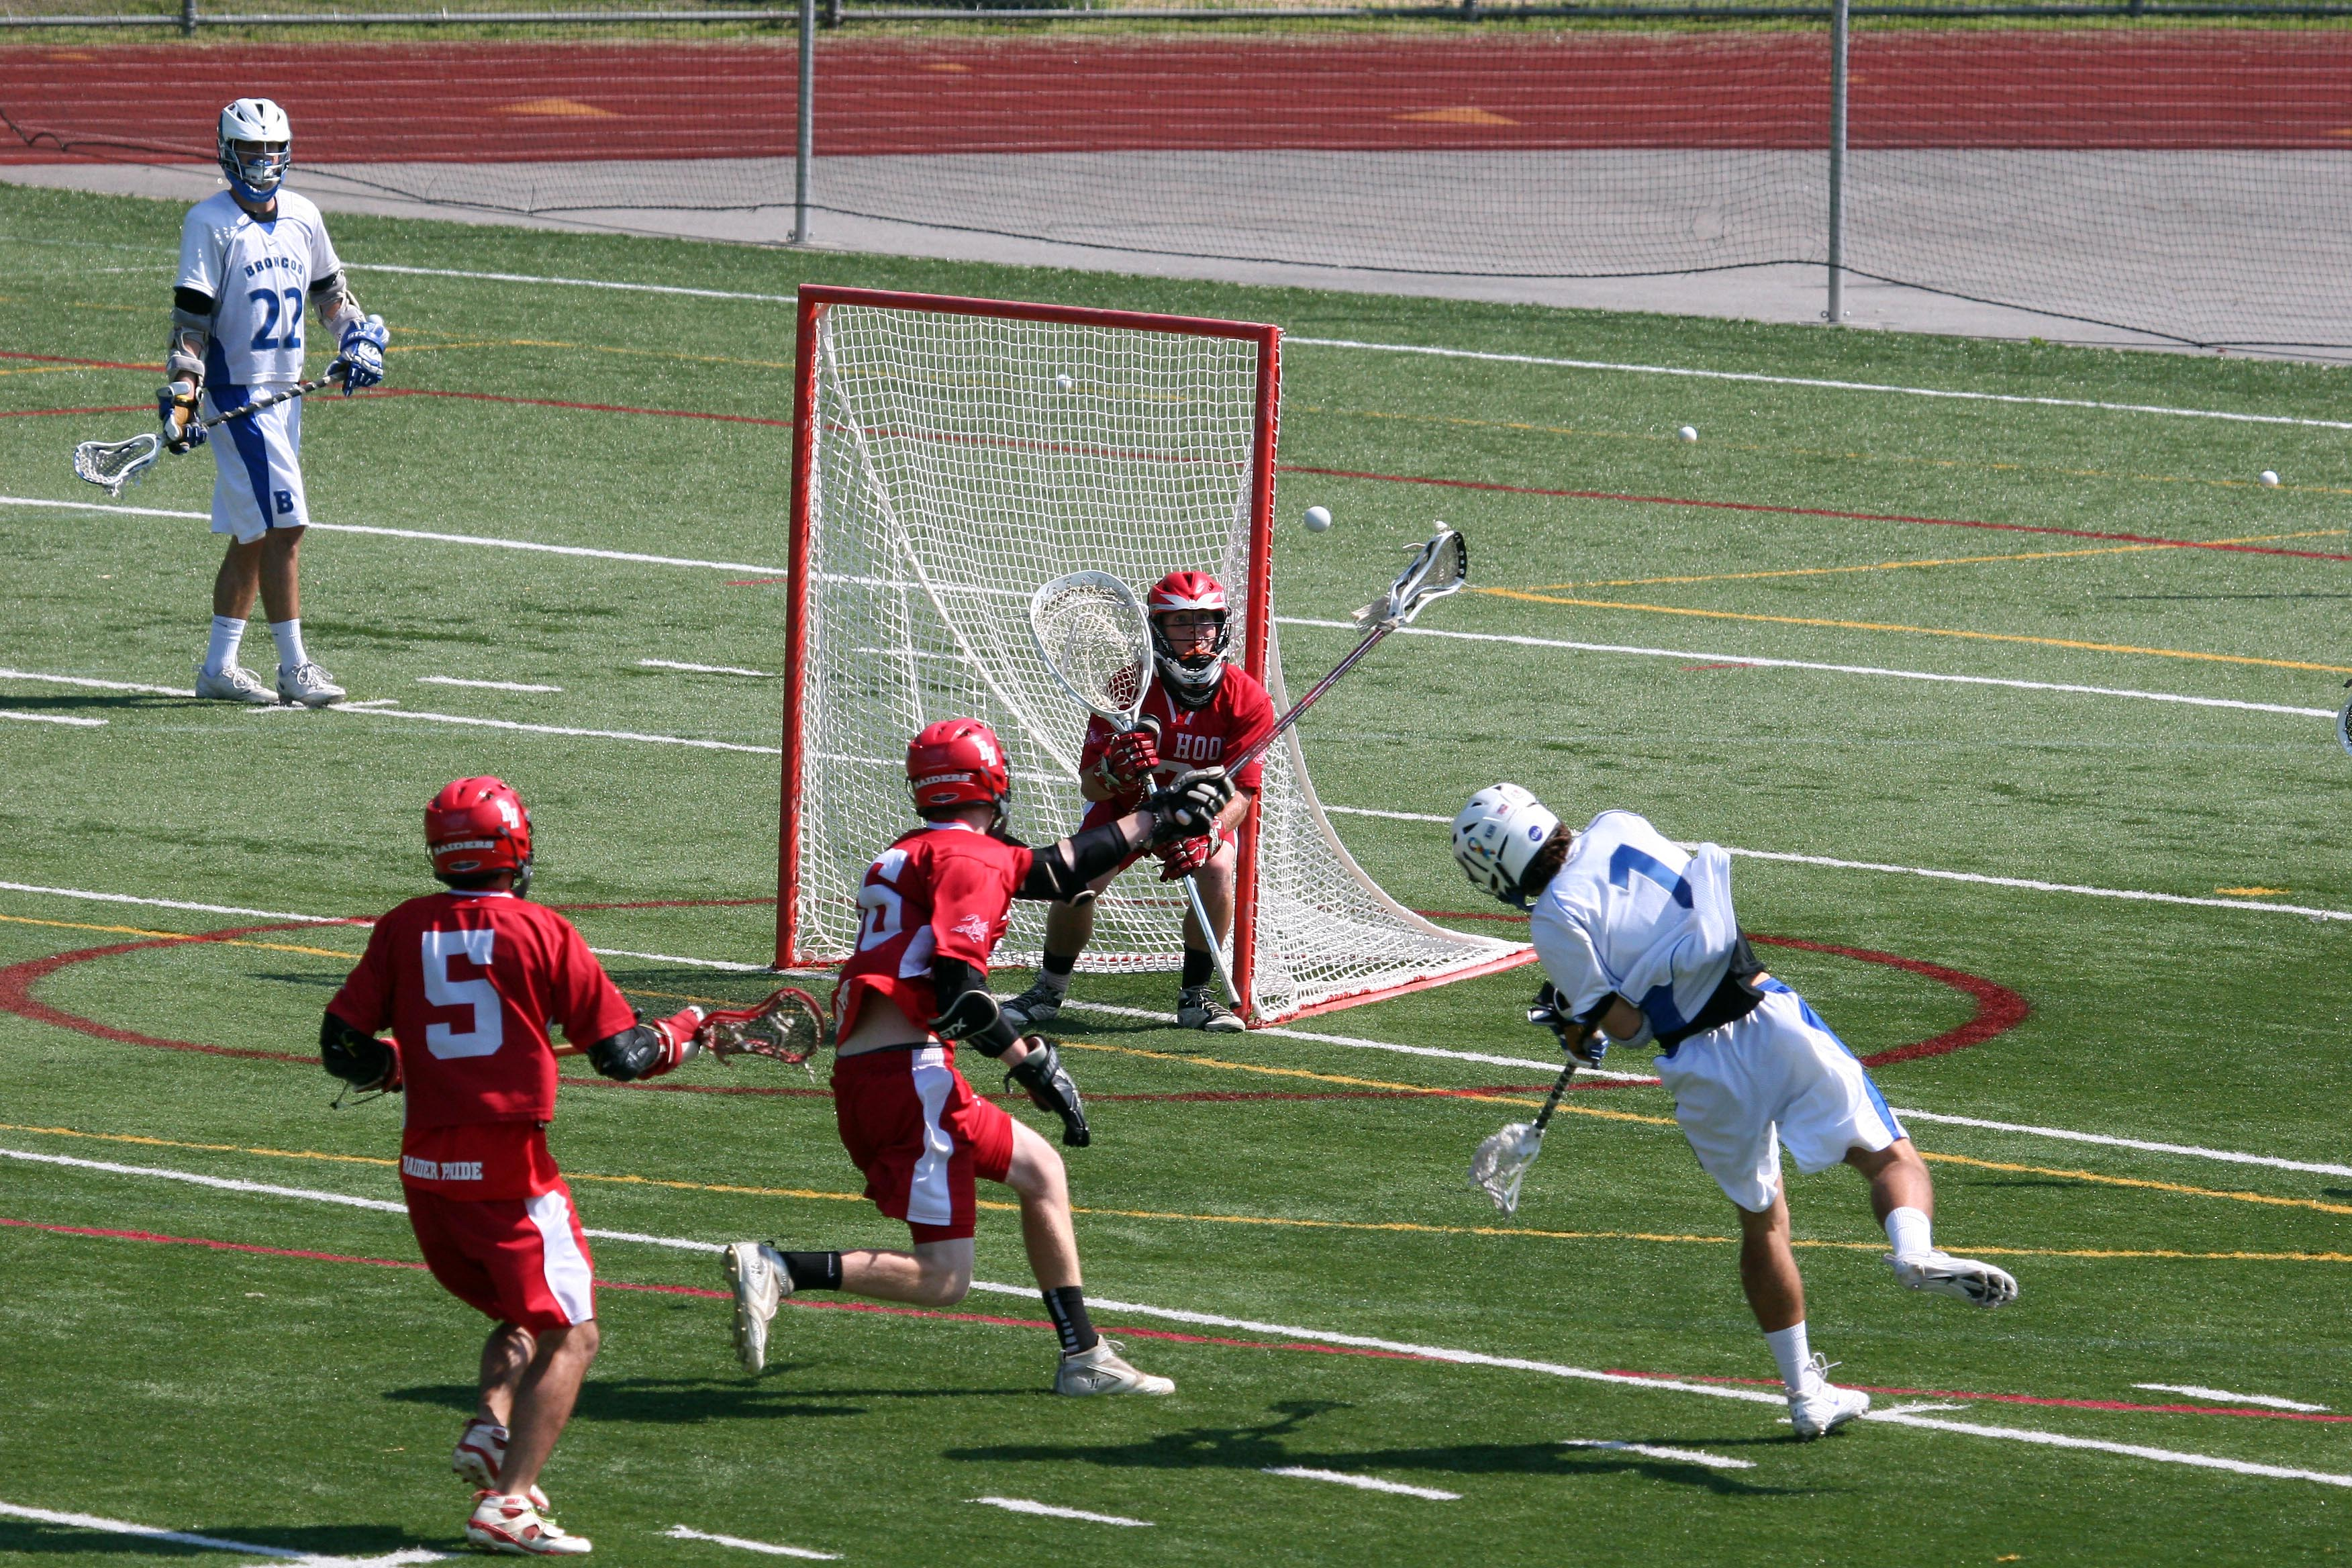 Red Hook goalie Austin Loeffel in position to make one of his 14 saves in the loss to Bronxville on June 1.